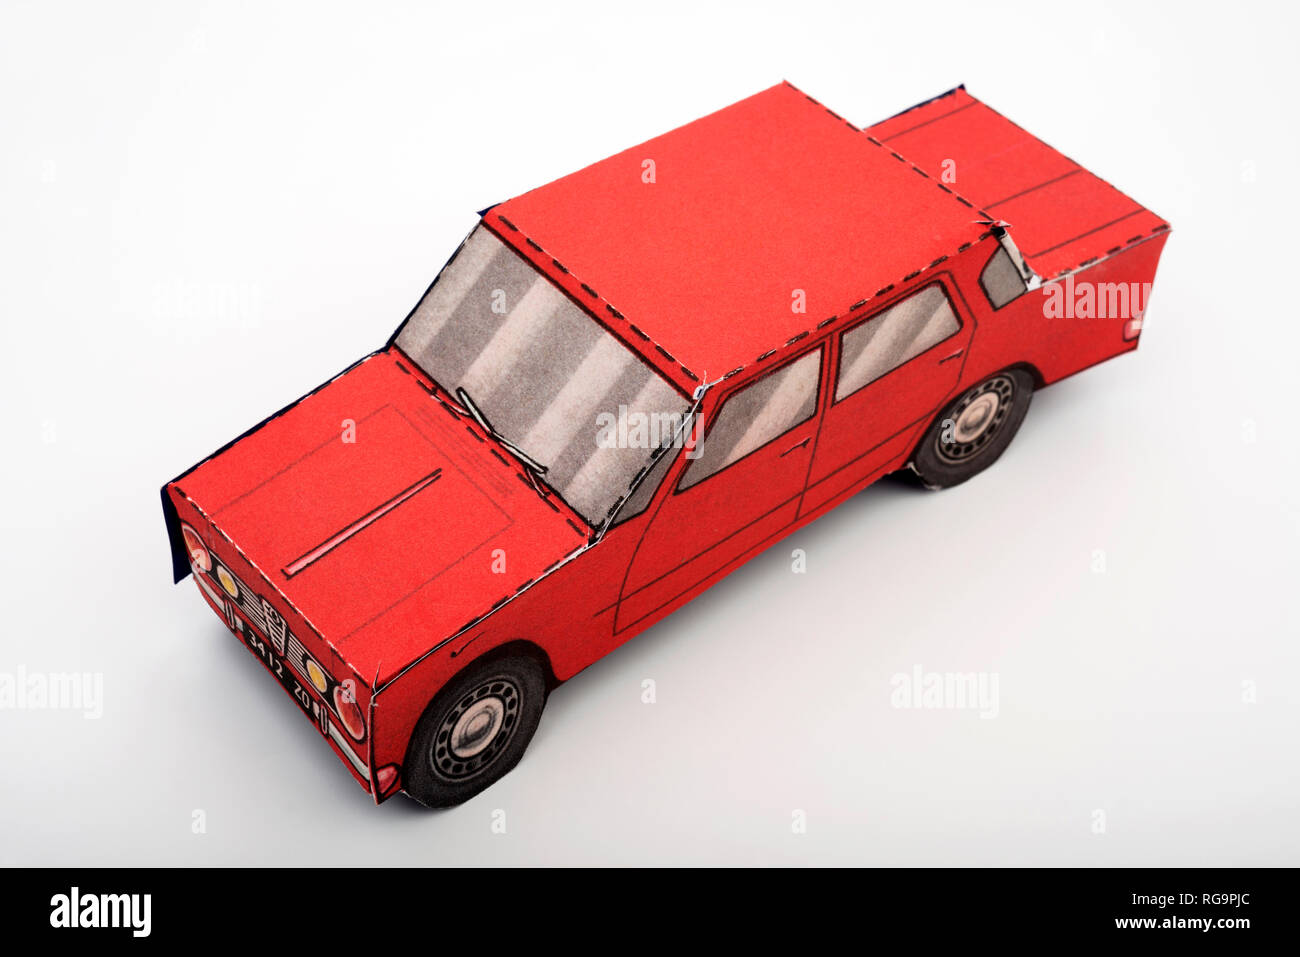 Model car made from card - Stock Image